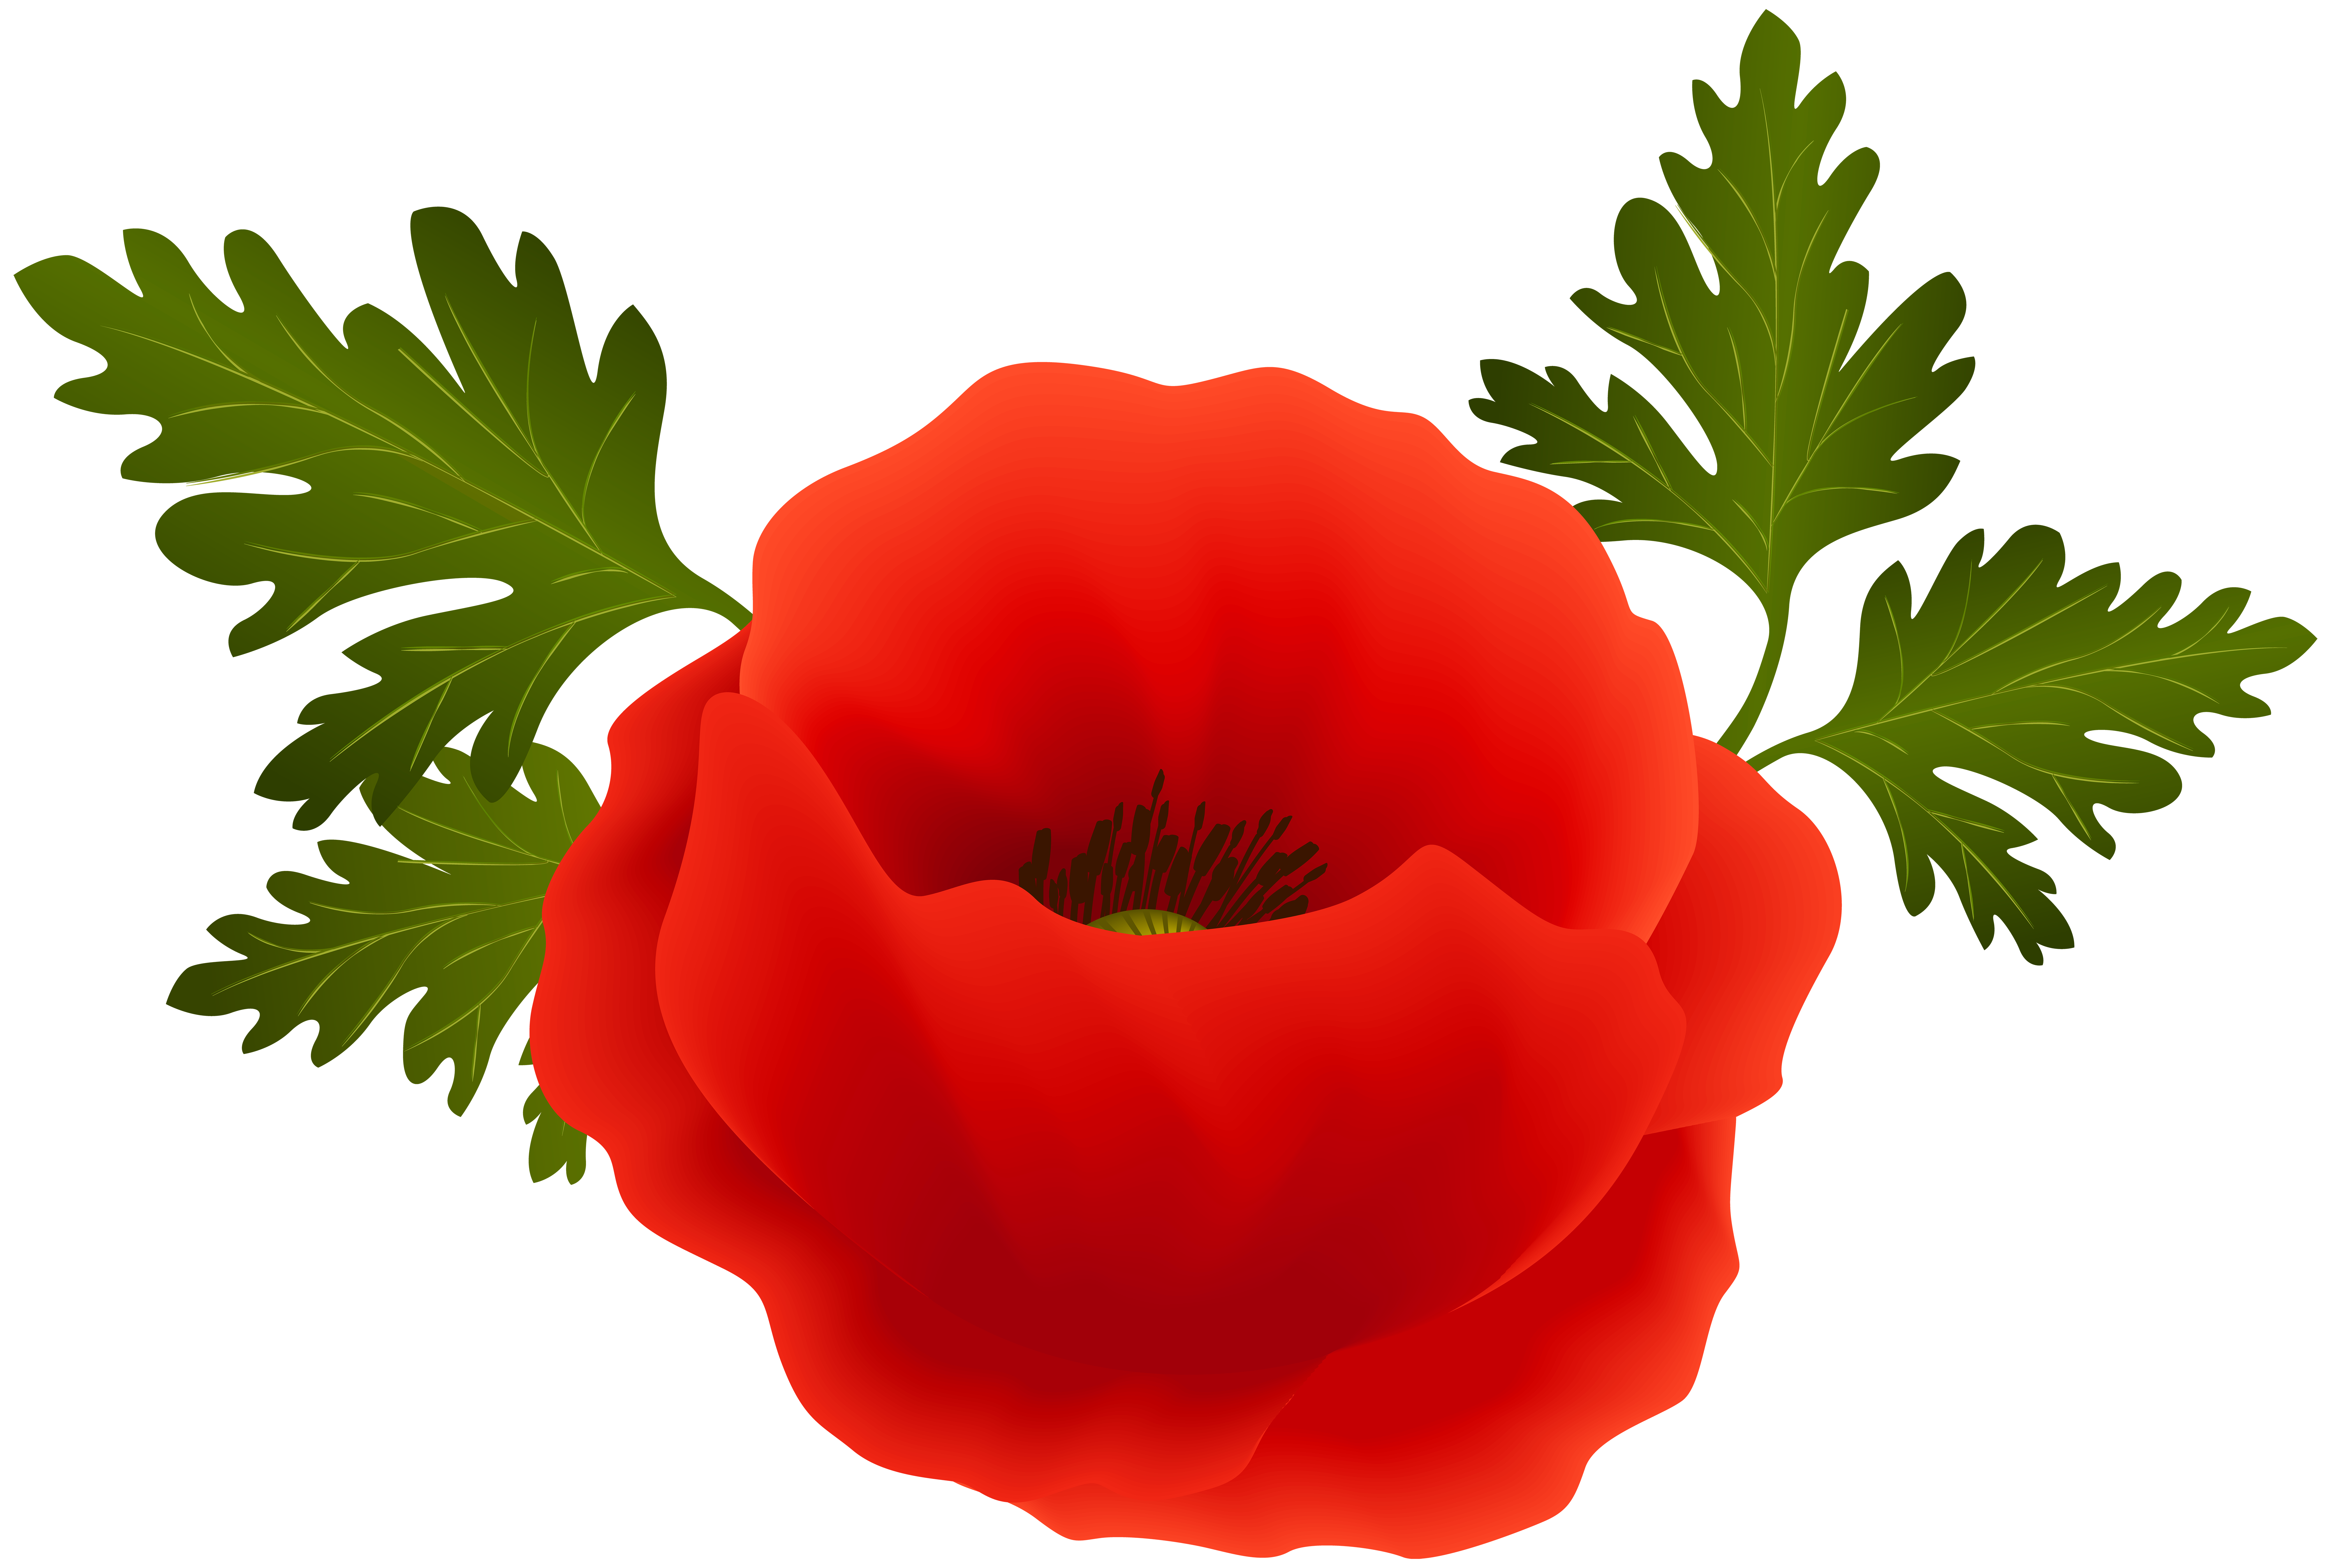 Poppy flower png. Clipart at getdrawings com